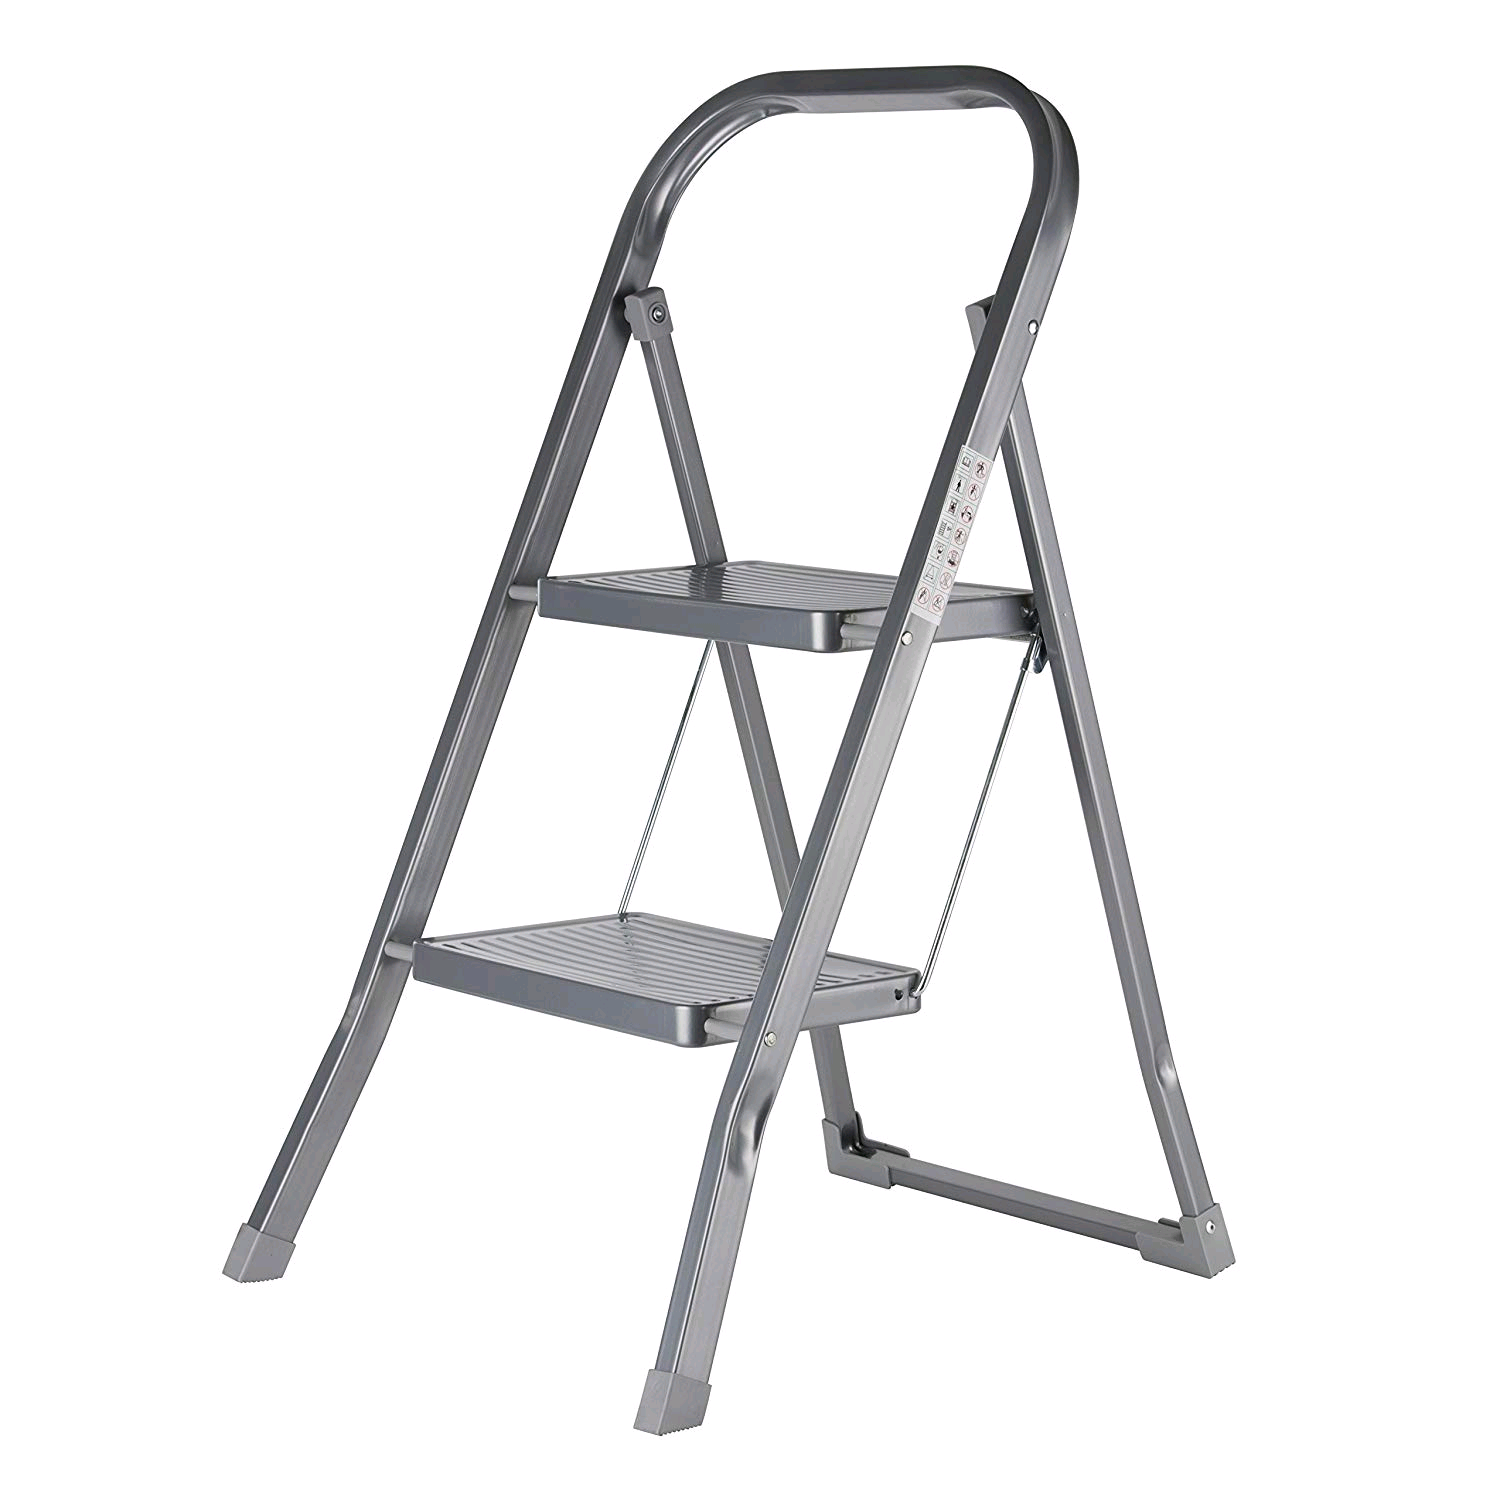 OurHouse SR20013 Heavy Duty Steel Folding 2 Tread Steps, Silver, 150 kg Capacity